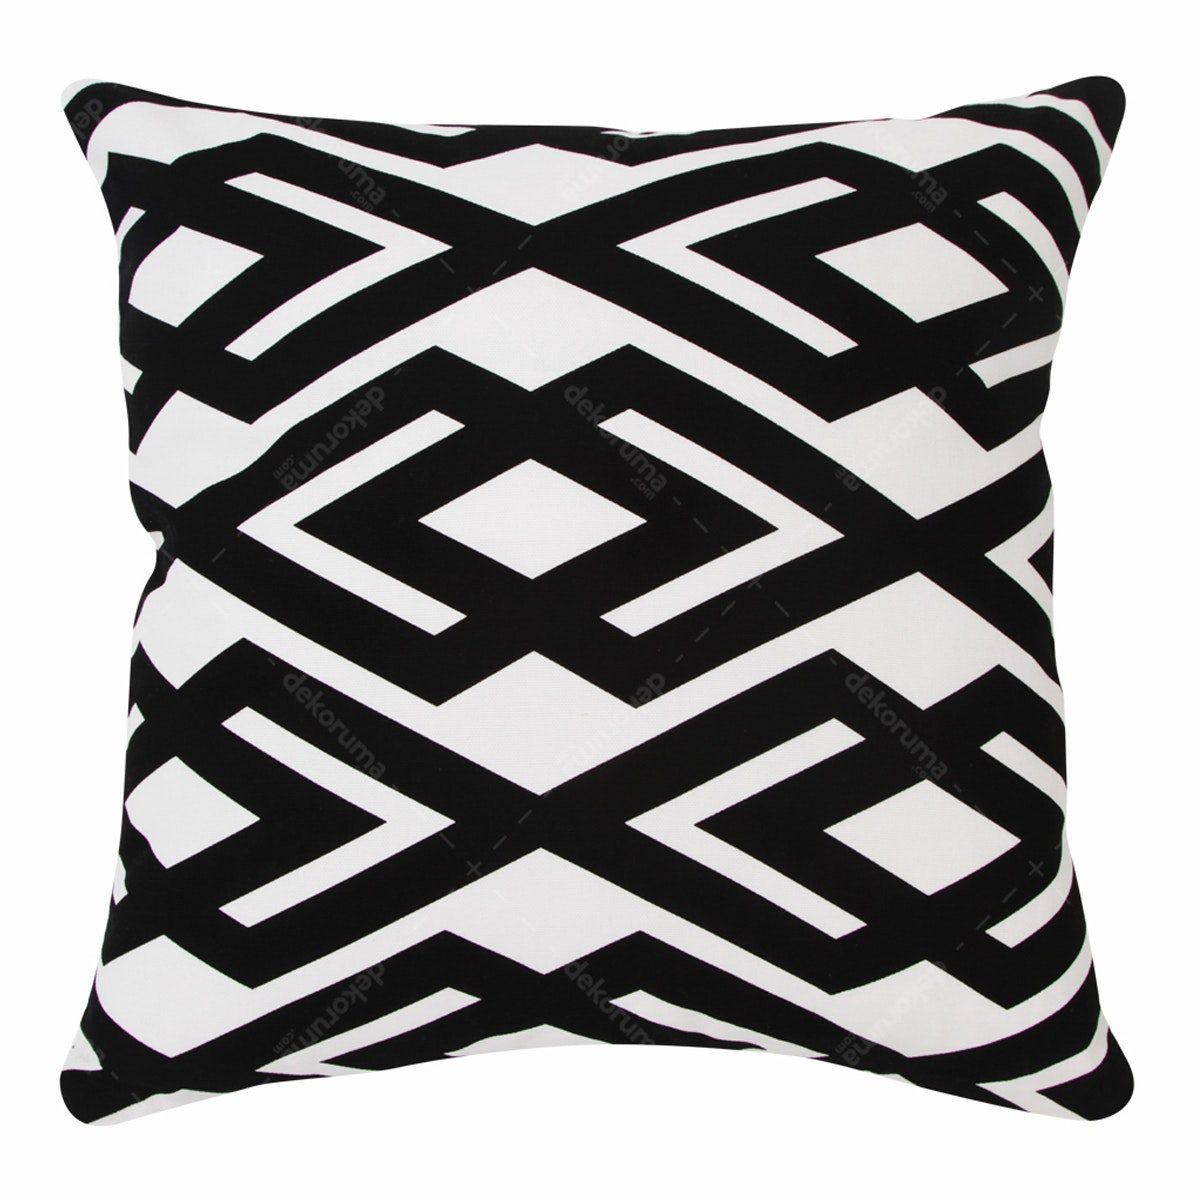 Le Noir Project Hammel Black Cushion Cover 40x40cm